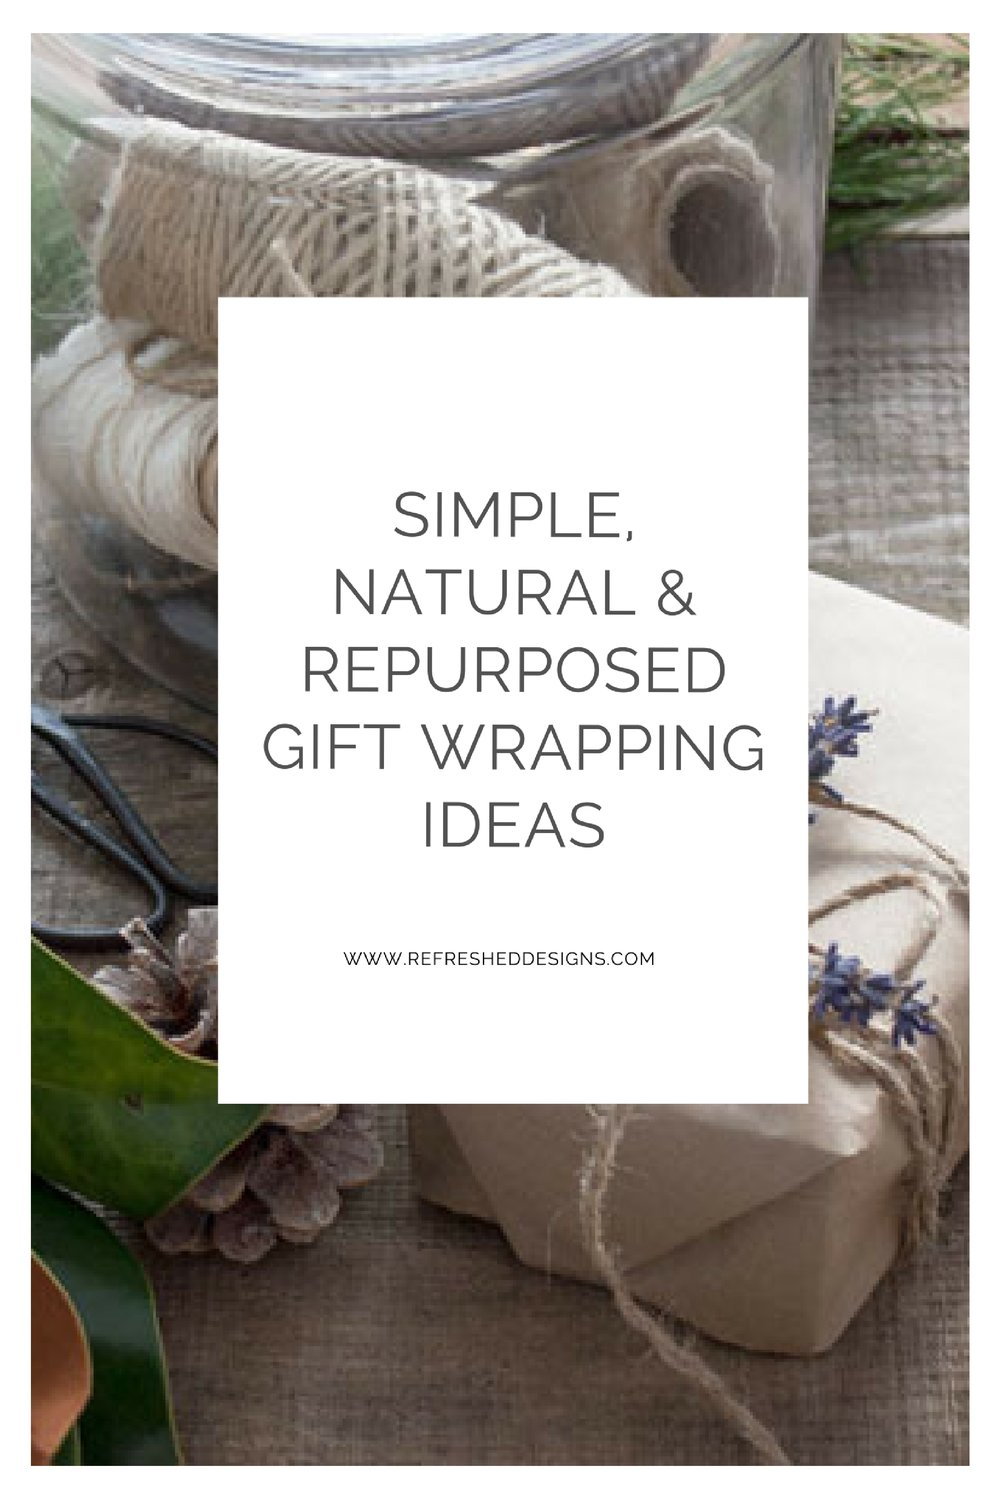 simple, natural and repurposed gift wrapping ideas